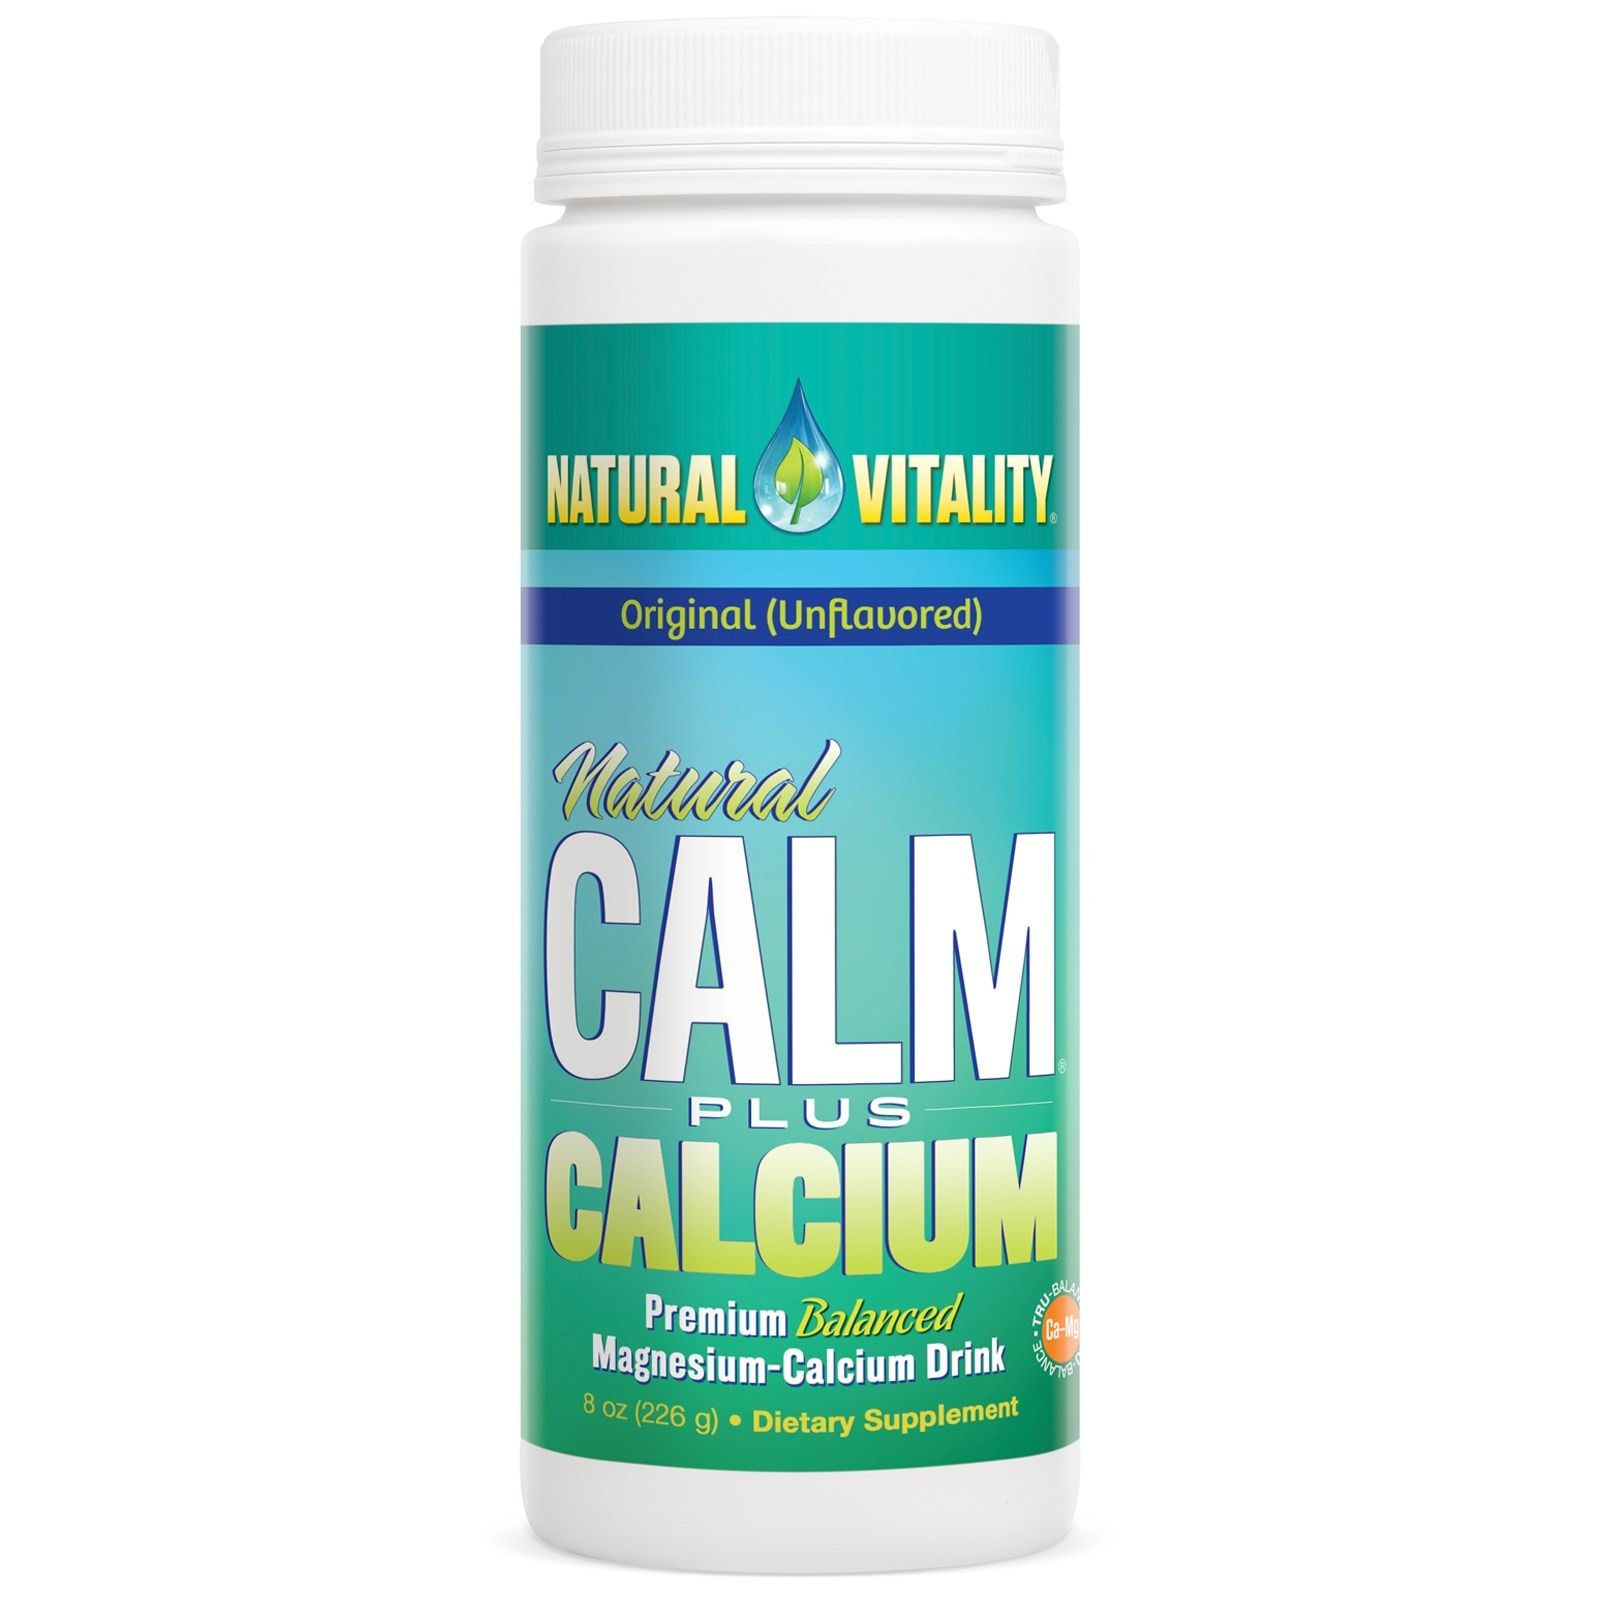 Natural Vitality, Natural Calm Plus Calcium, Original